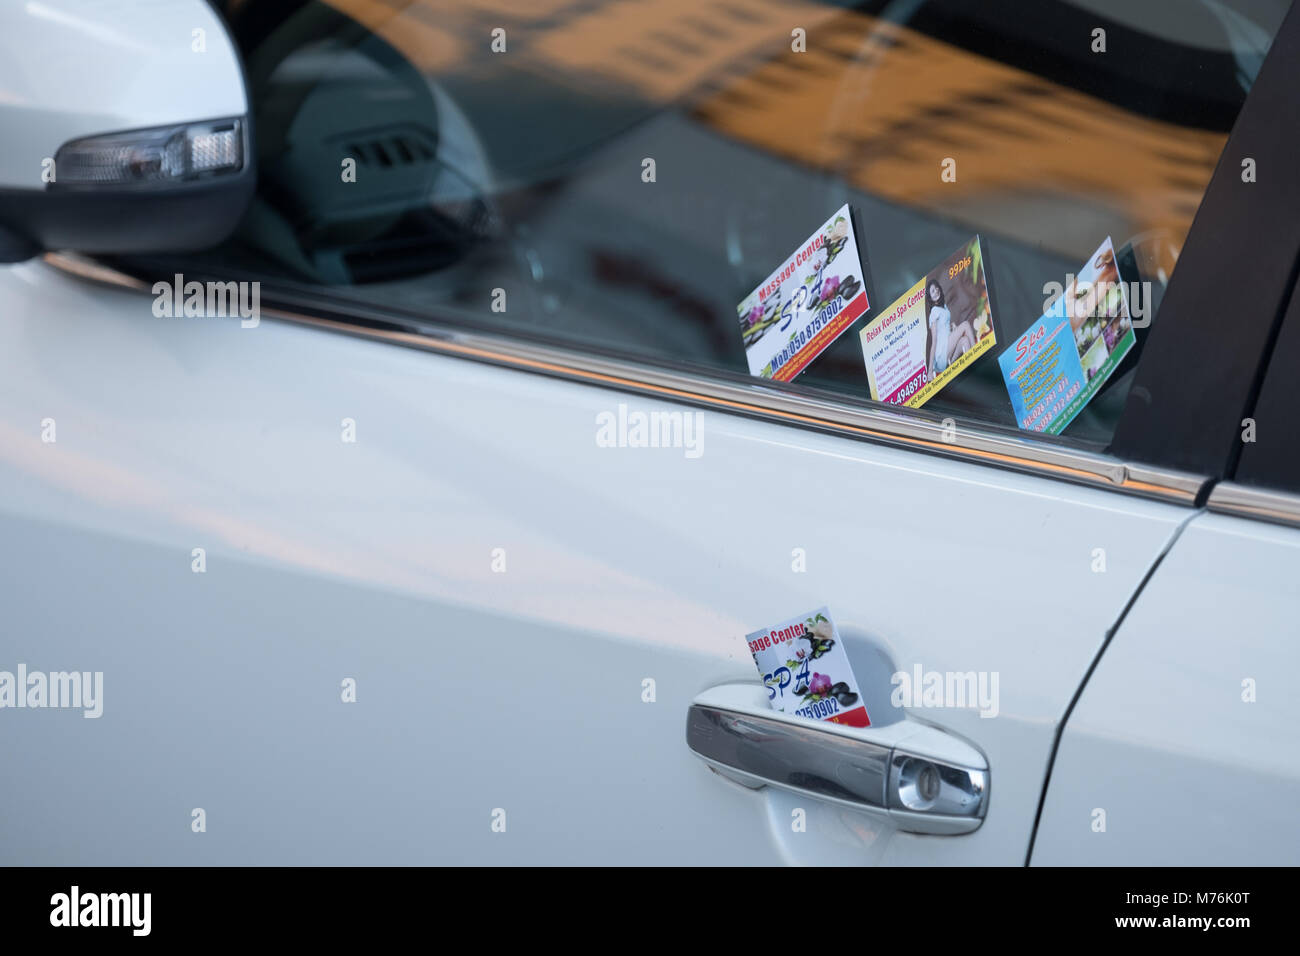 Spa and massage visiting cards palced on vehicles' door handle and window glass. - Stock Image